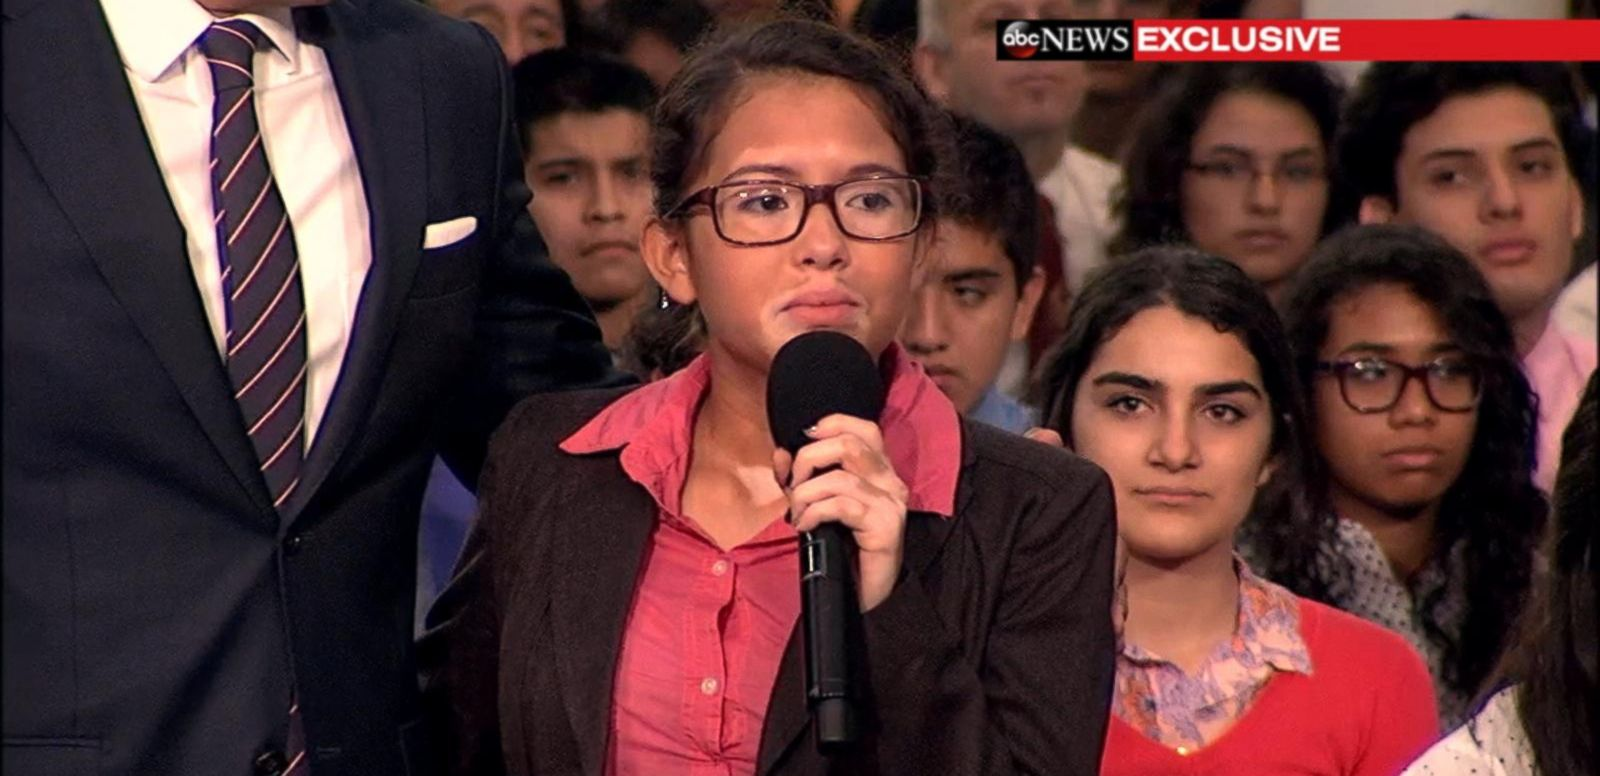 VIDEO: Chicago Teen Sings for the Pope